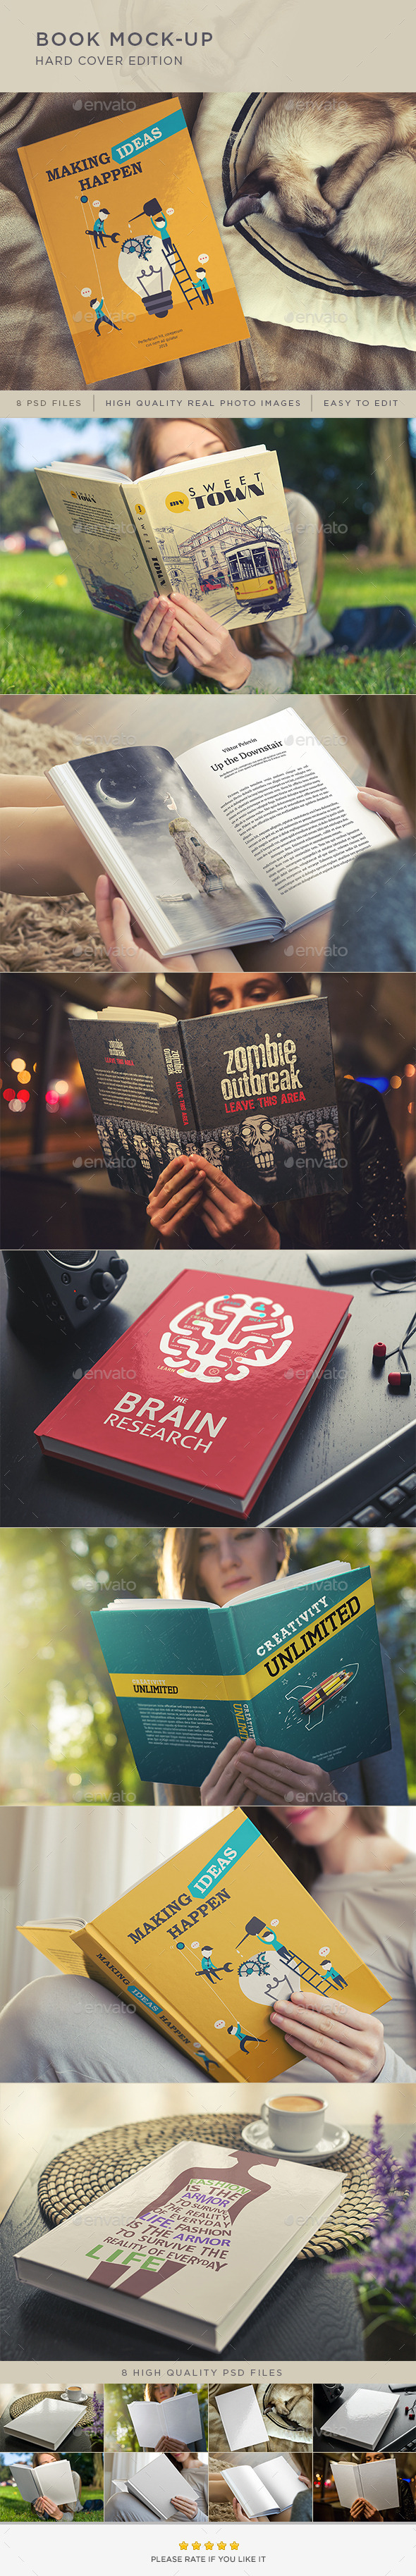 Book Mock-Up / Hard Cover Edition - Books Print